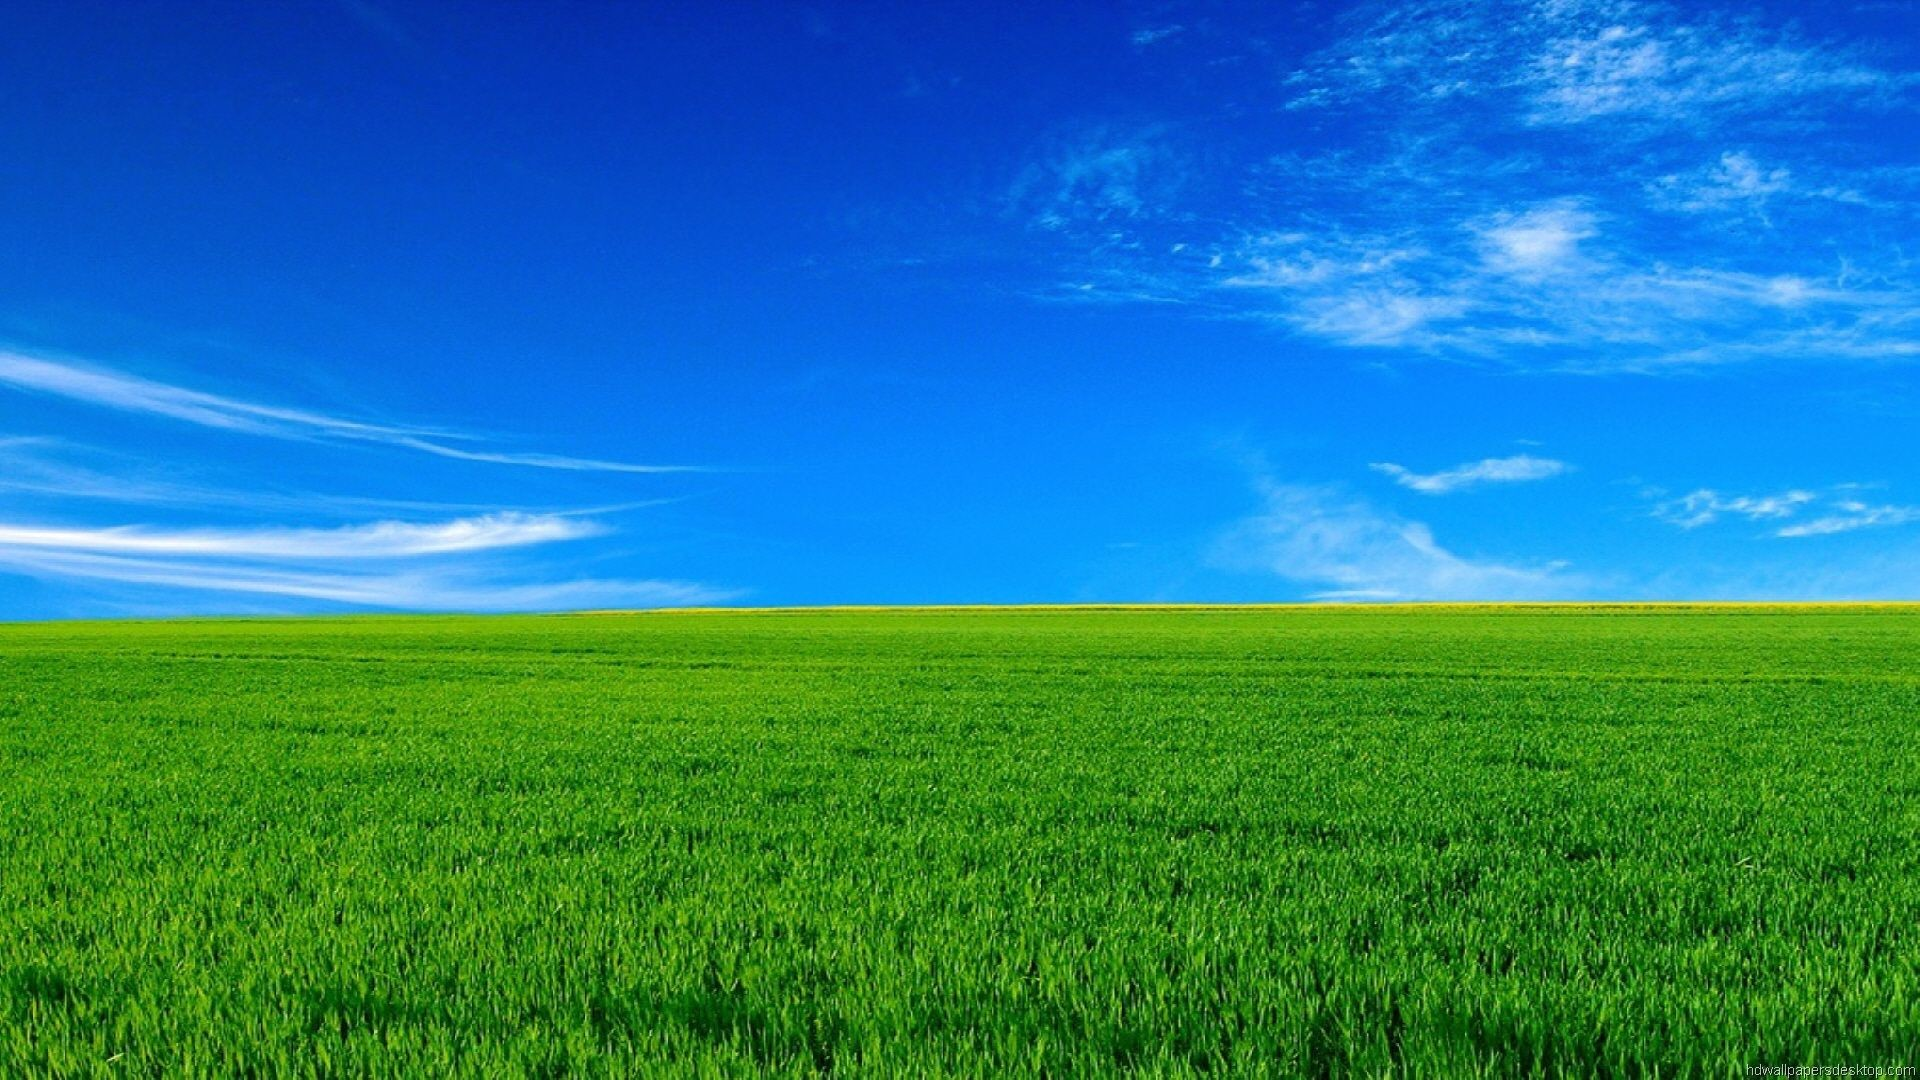 Hd Wallpapers 1080p 79 Background Pictures